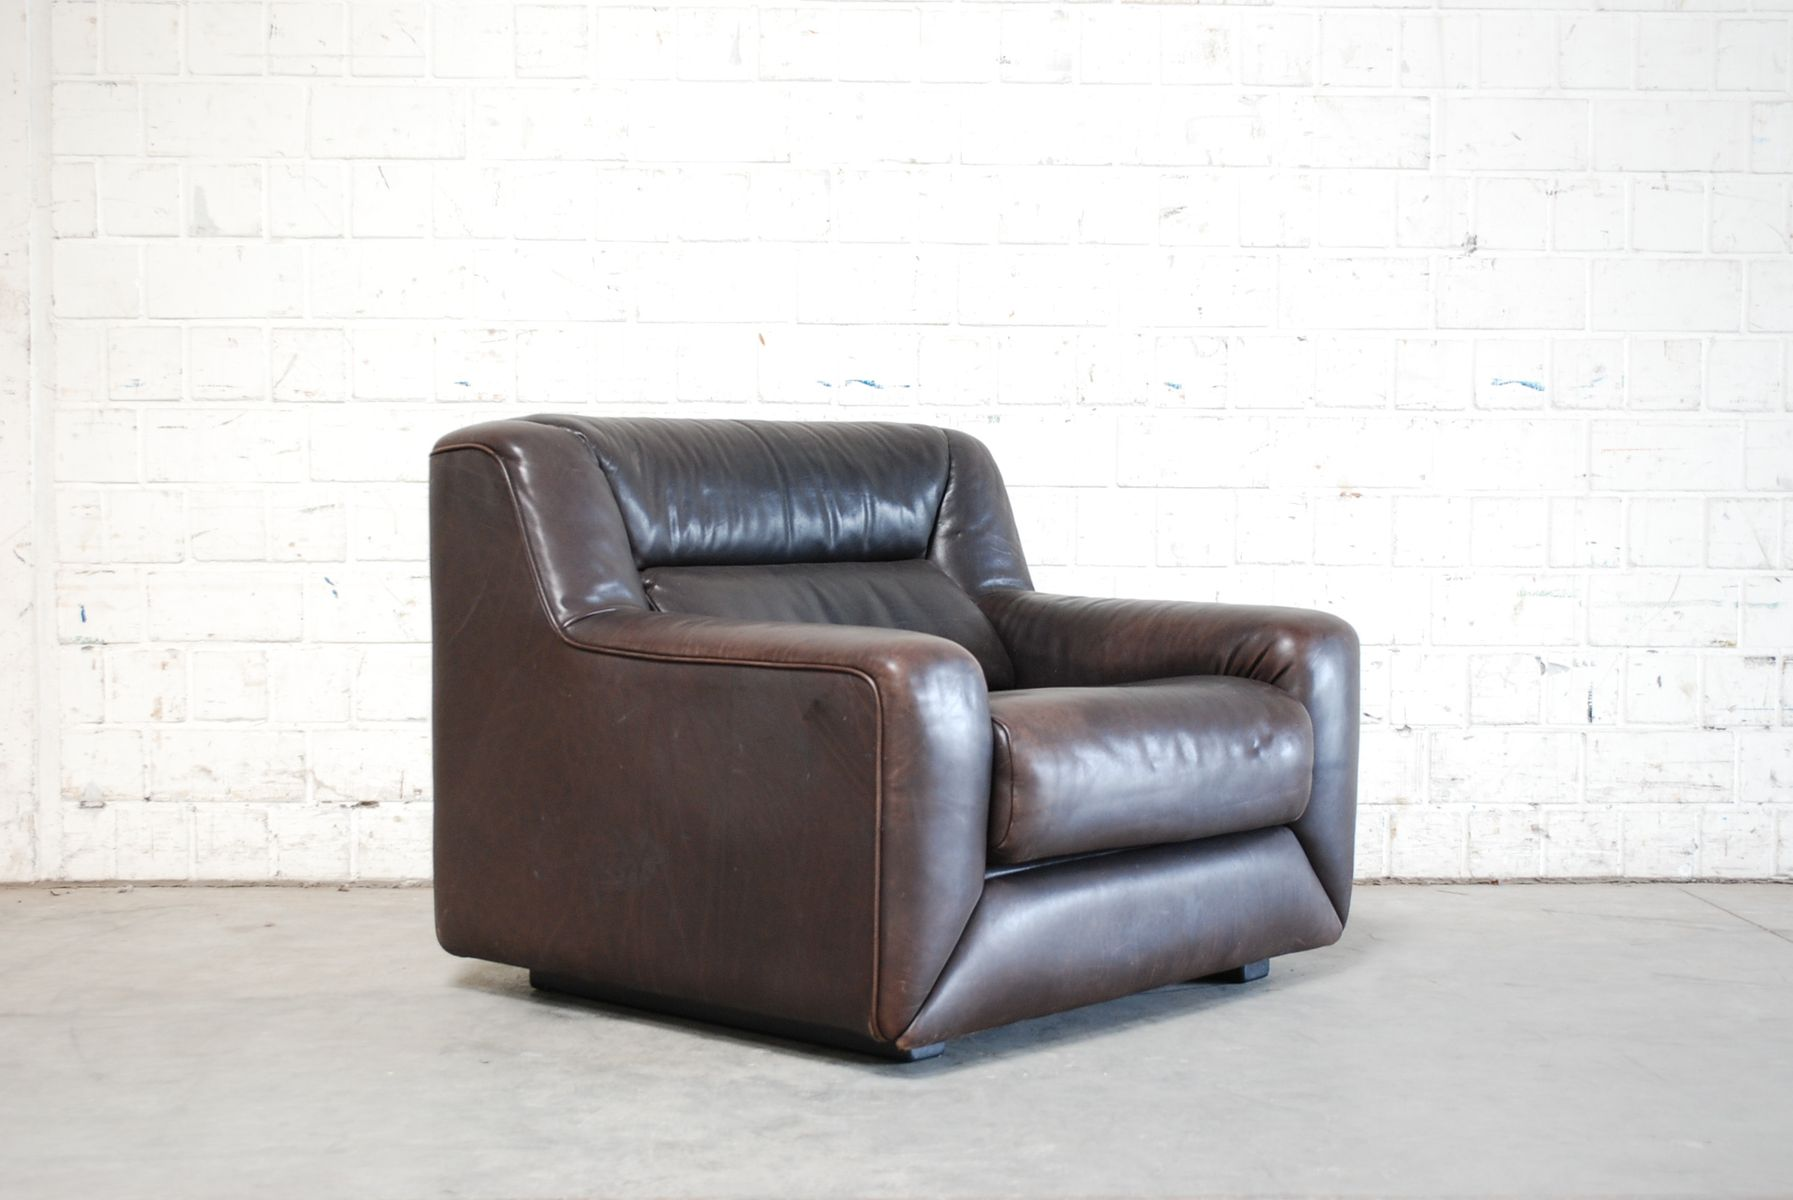 DS 43 Brown Leather Club Chair from De Sede 1985 for sale at Pamono